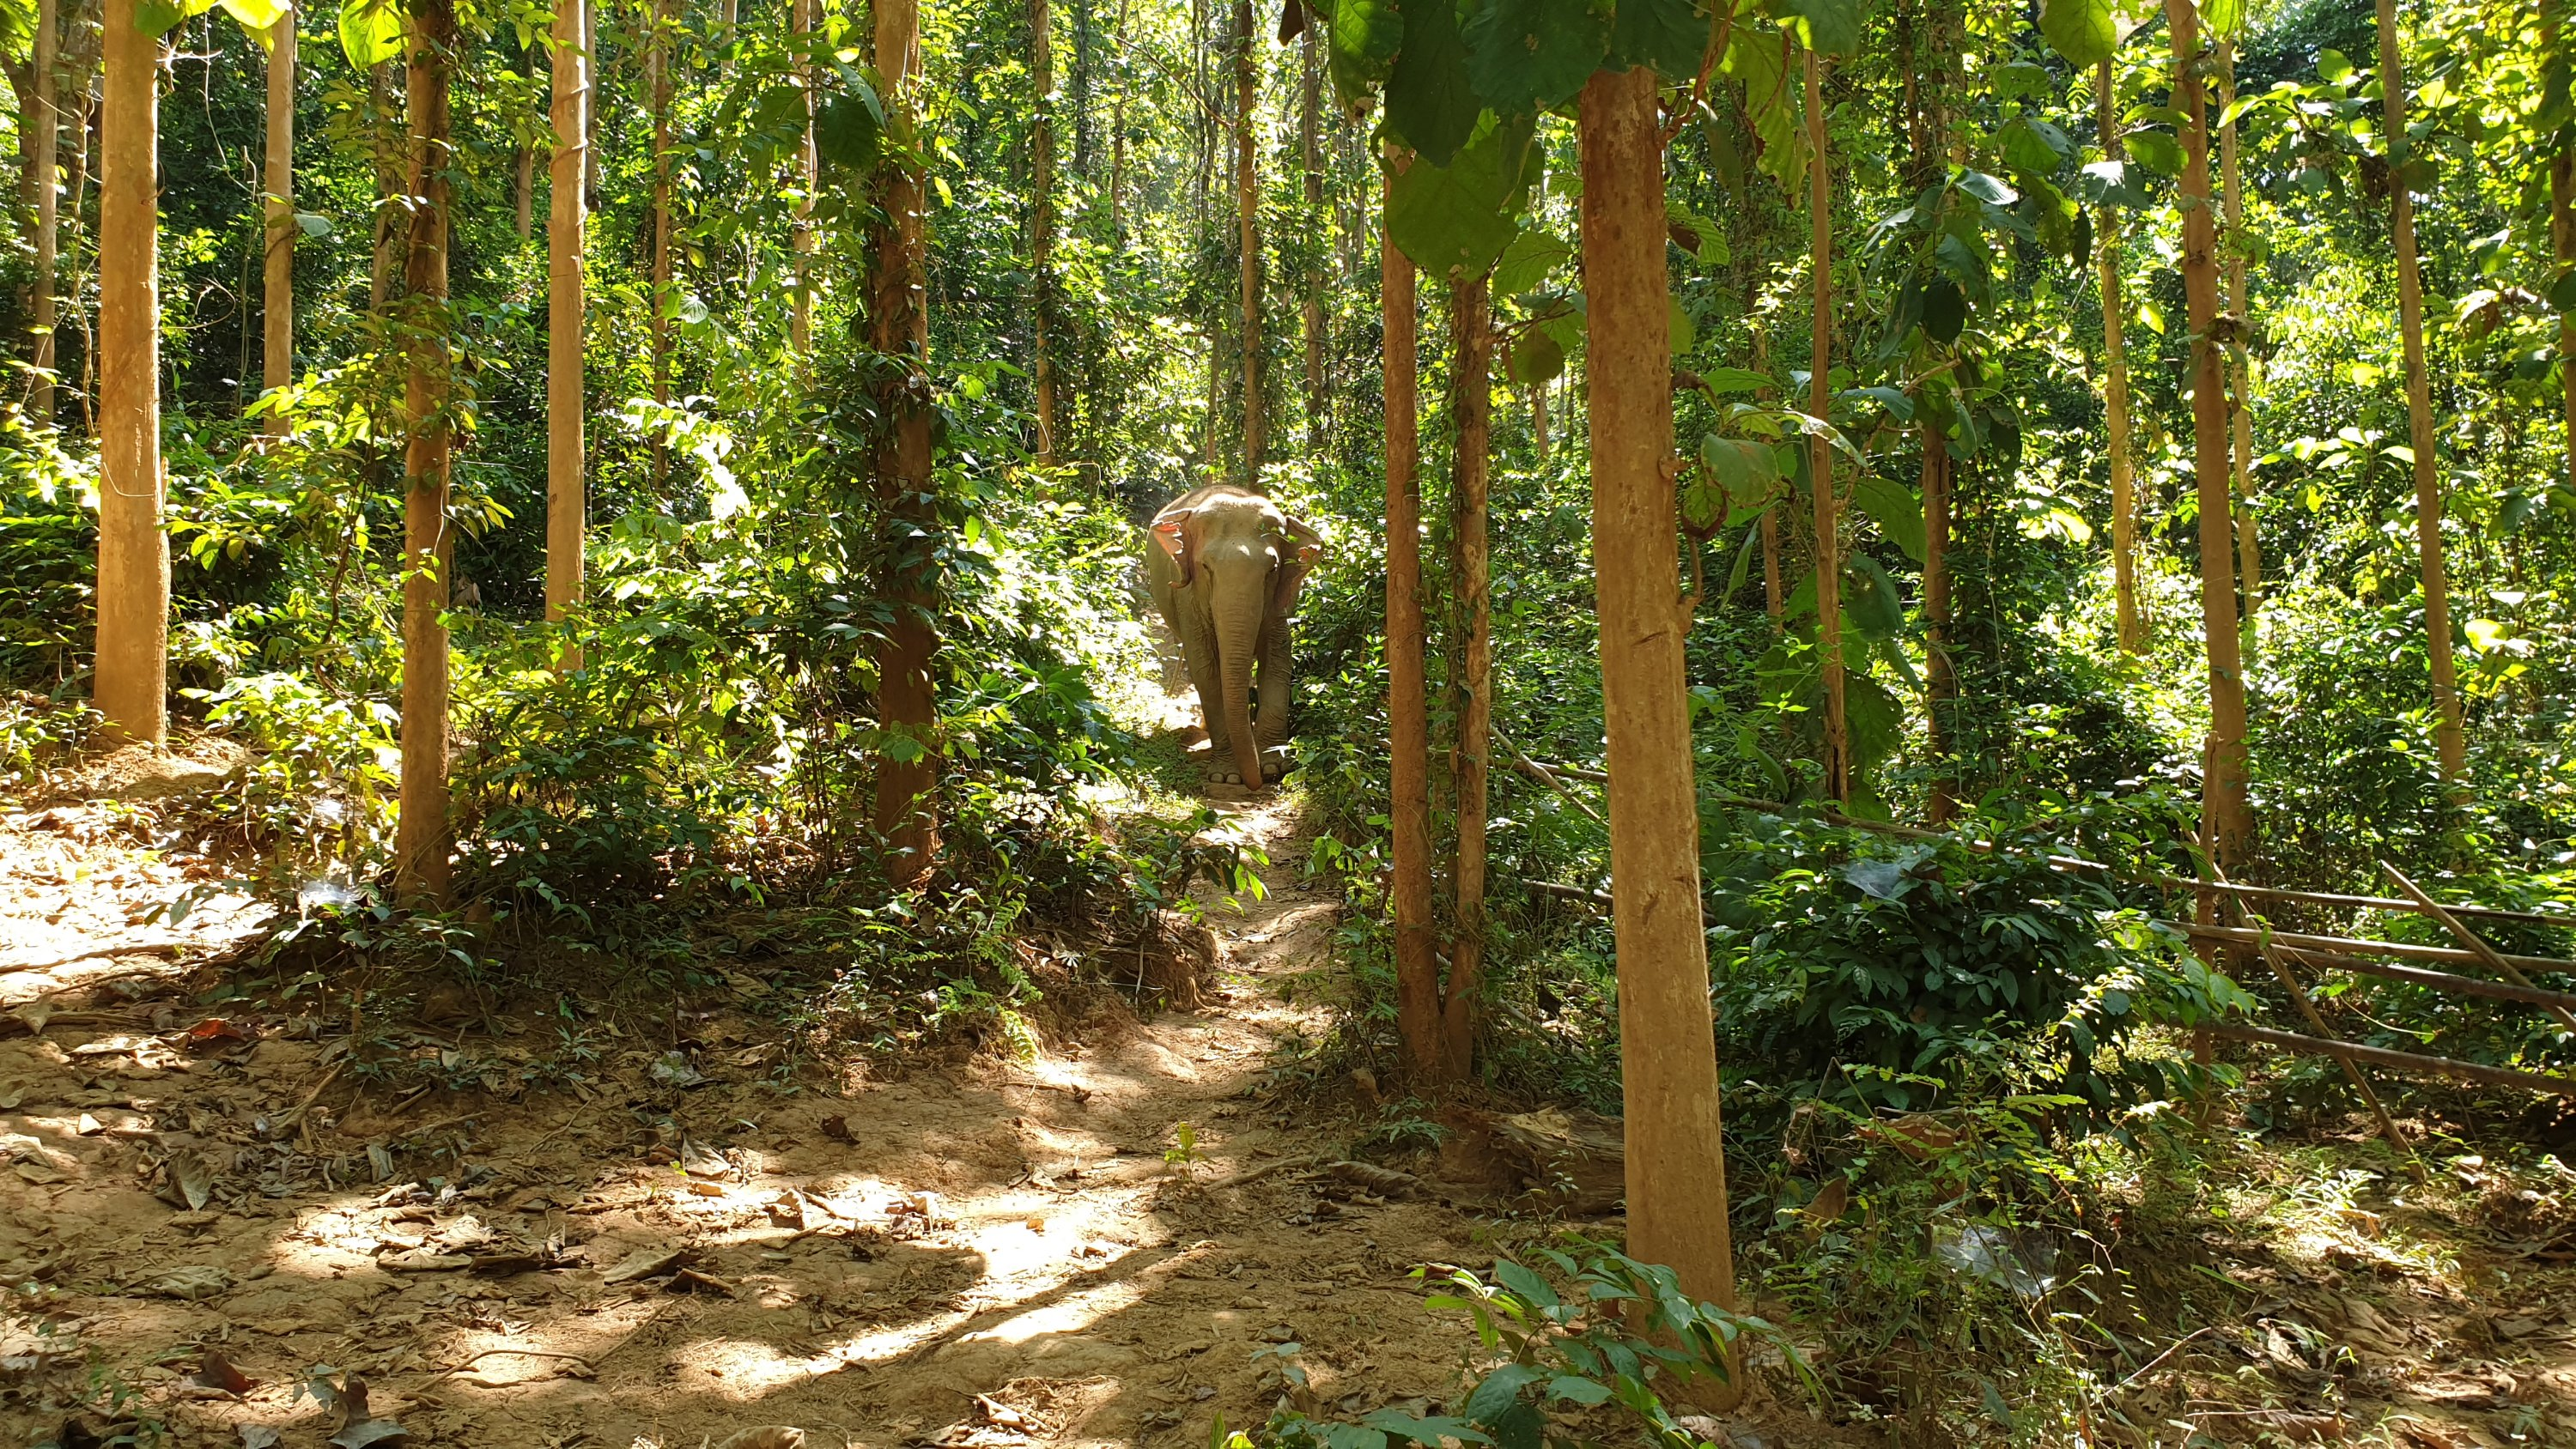 Elephant in the jungle at Mandalao Elephant Sanctuary